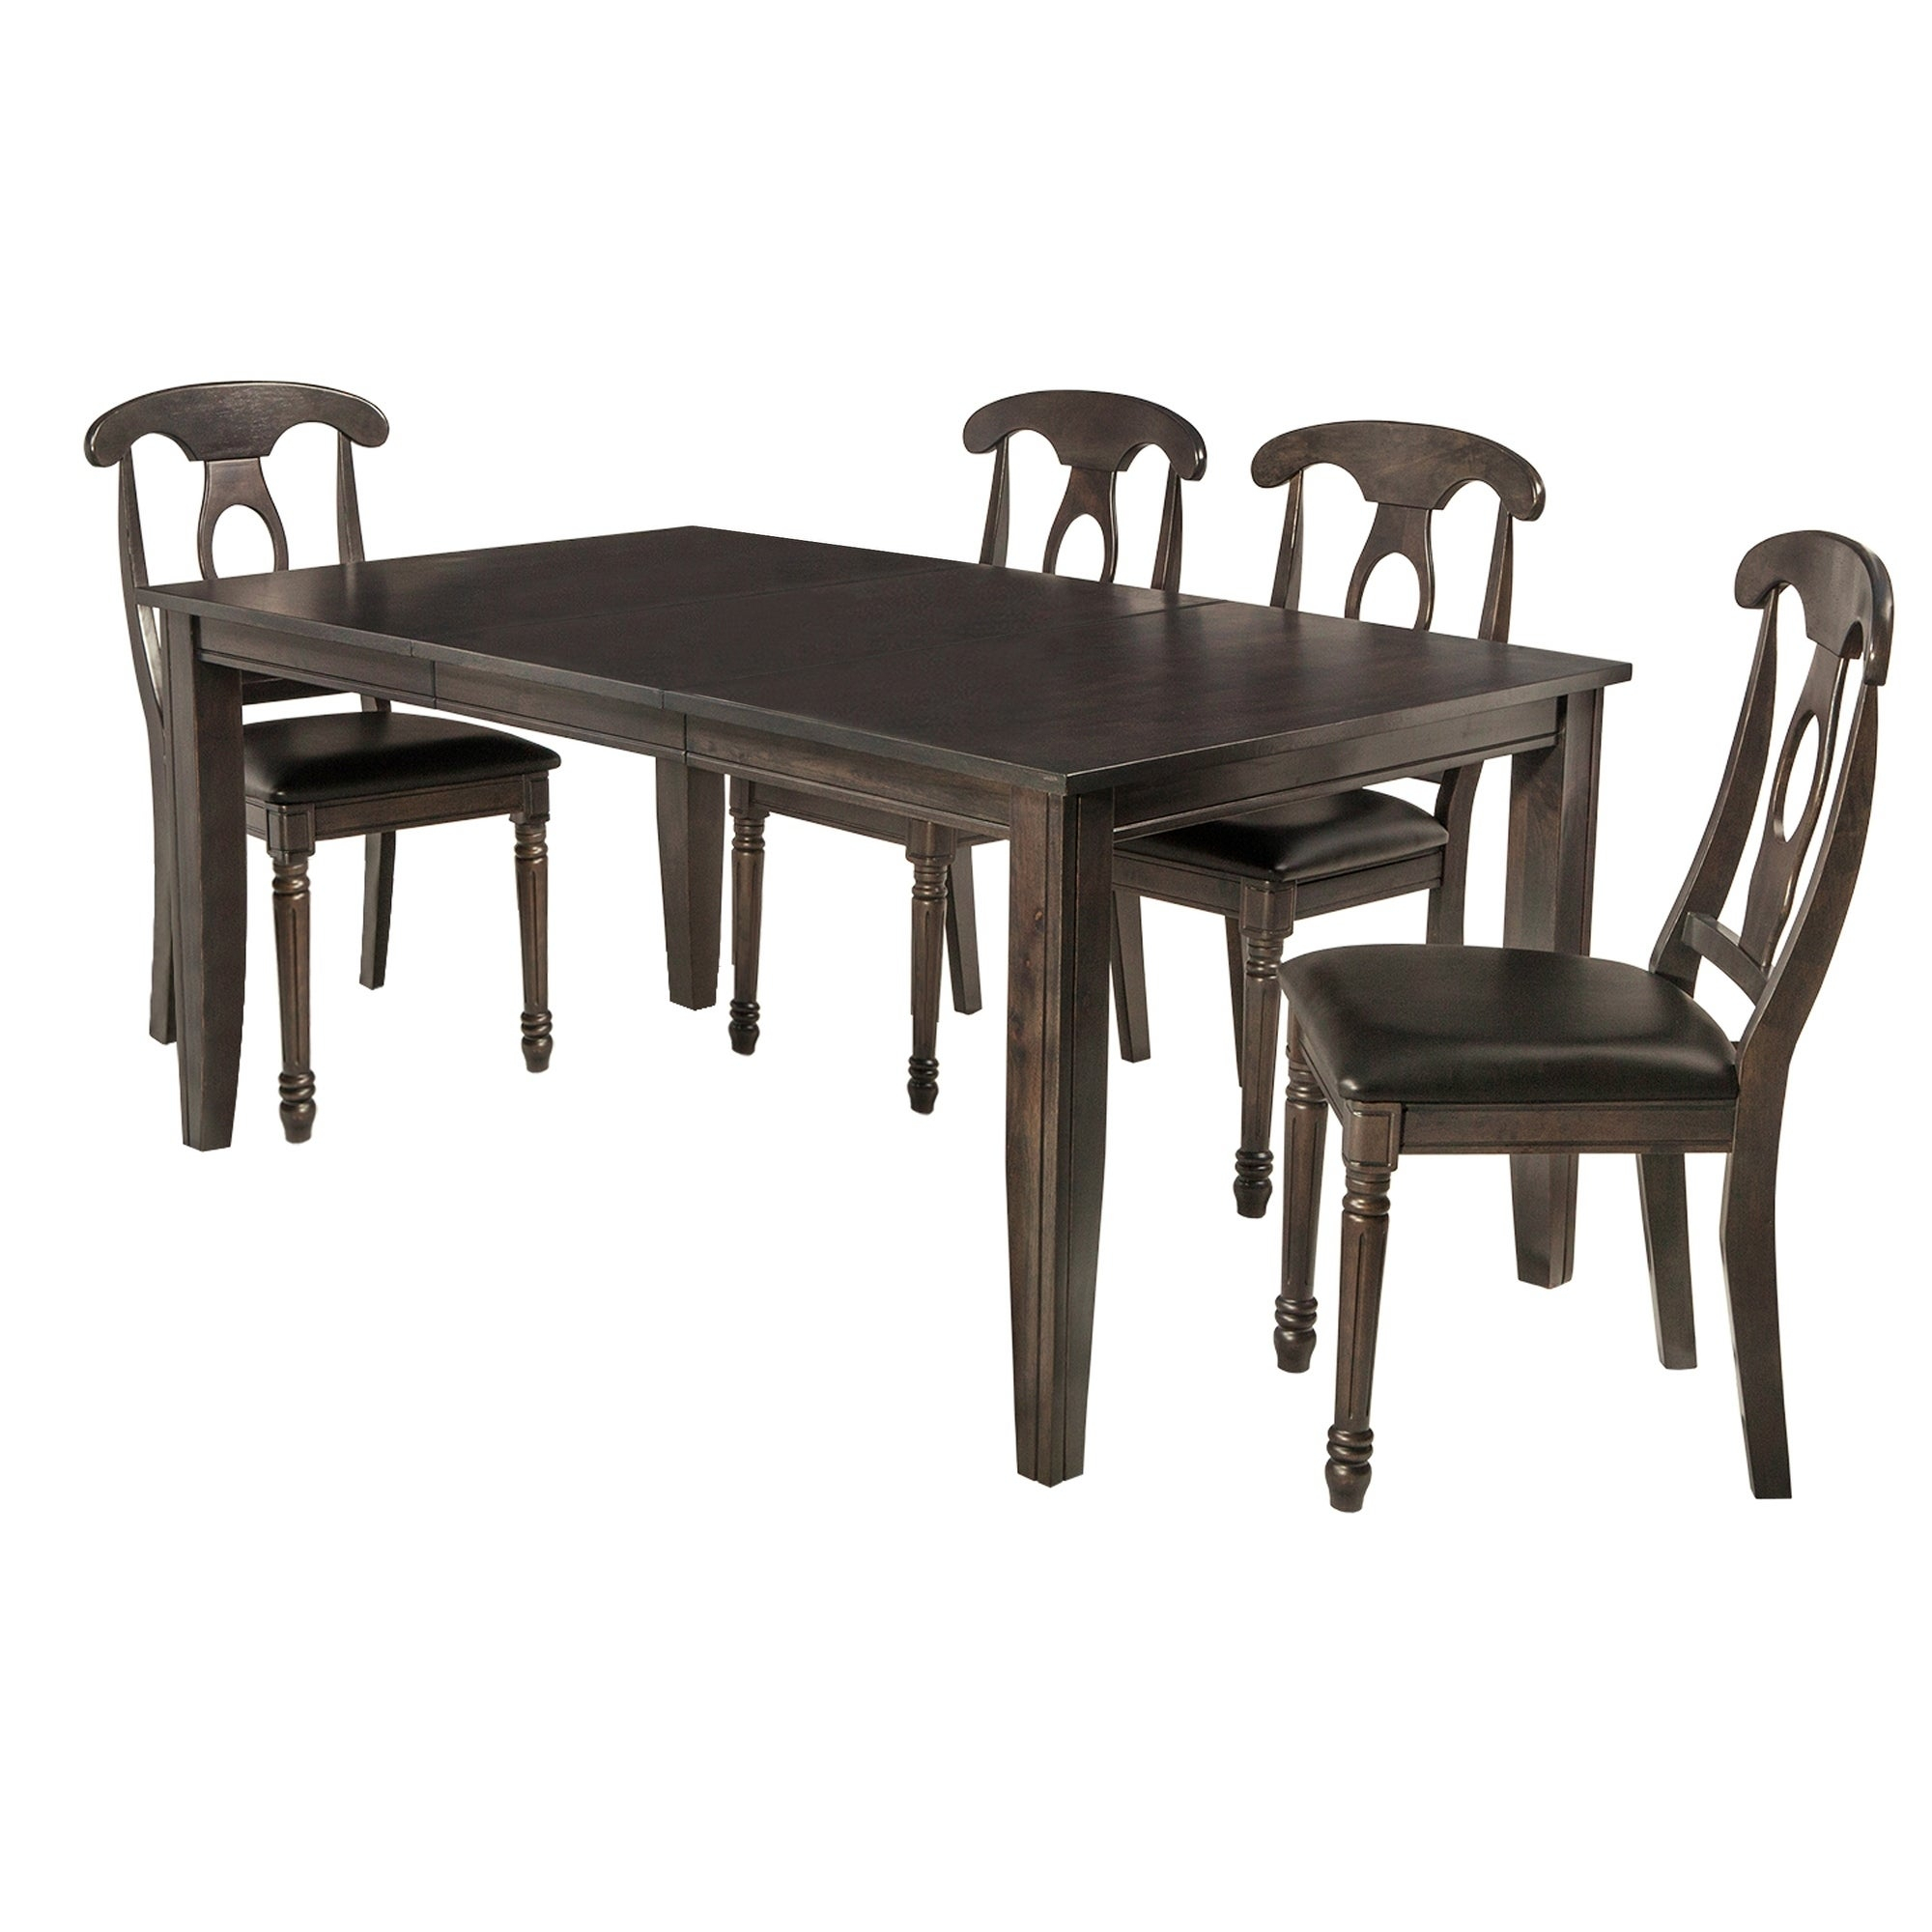 "5 Piece Solid Wood Dining Set ""aden"", Modern Kitchen Table Set, Dark Gray Inside Most Recently Released Adan 5 Piece Solid Wood Dining Sets (Set Of 5) (View 6 of 20)"